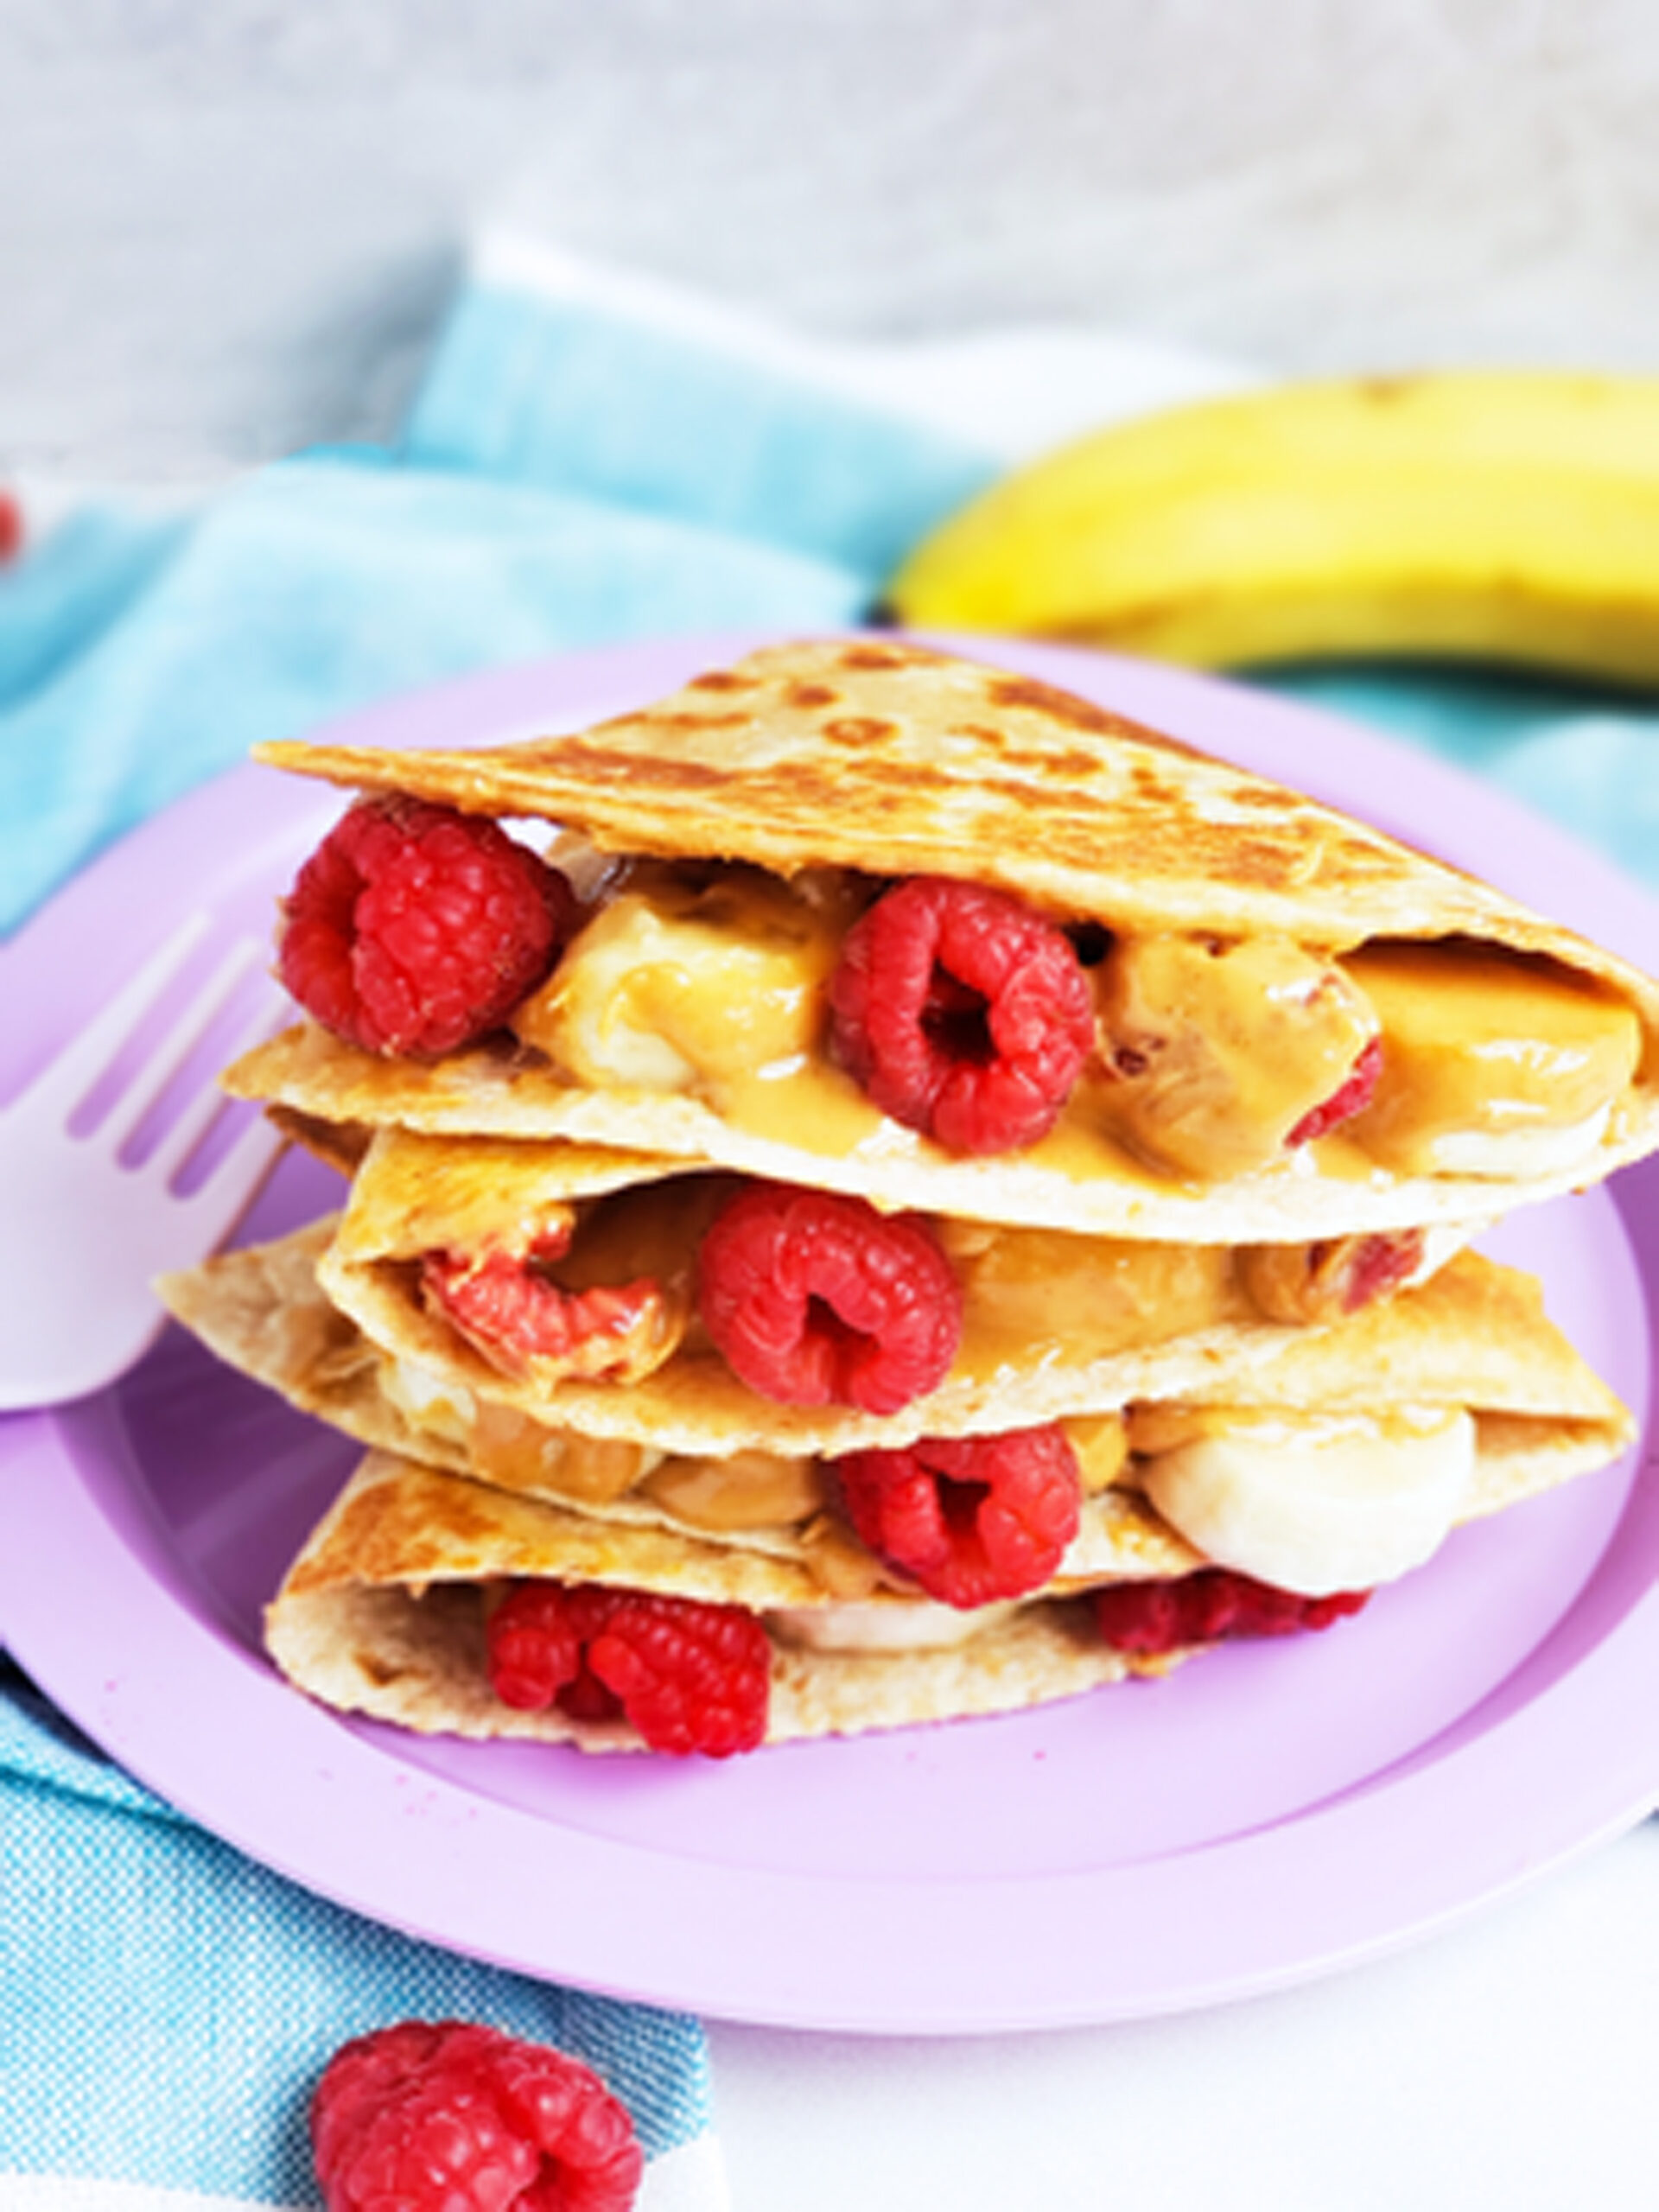 Raspberry, Banana, & Peanut Butter Quesadillas